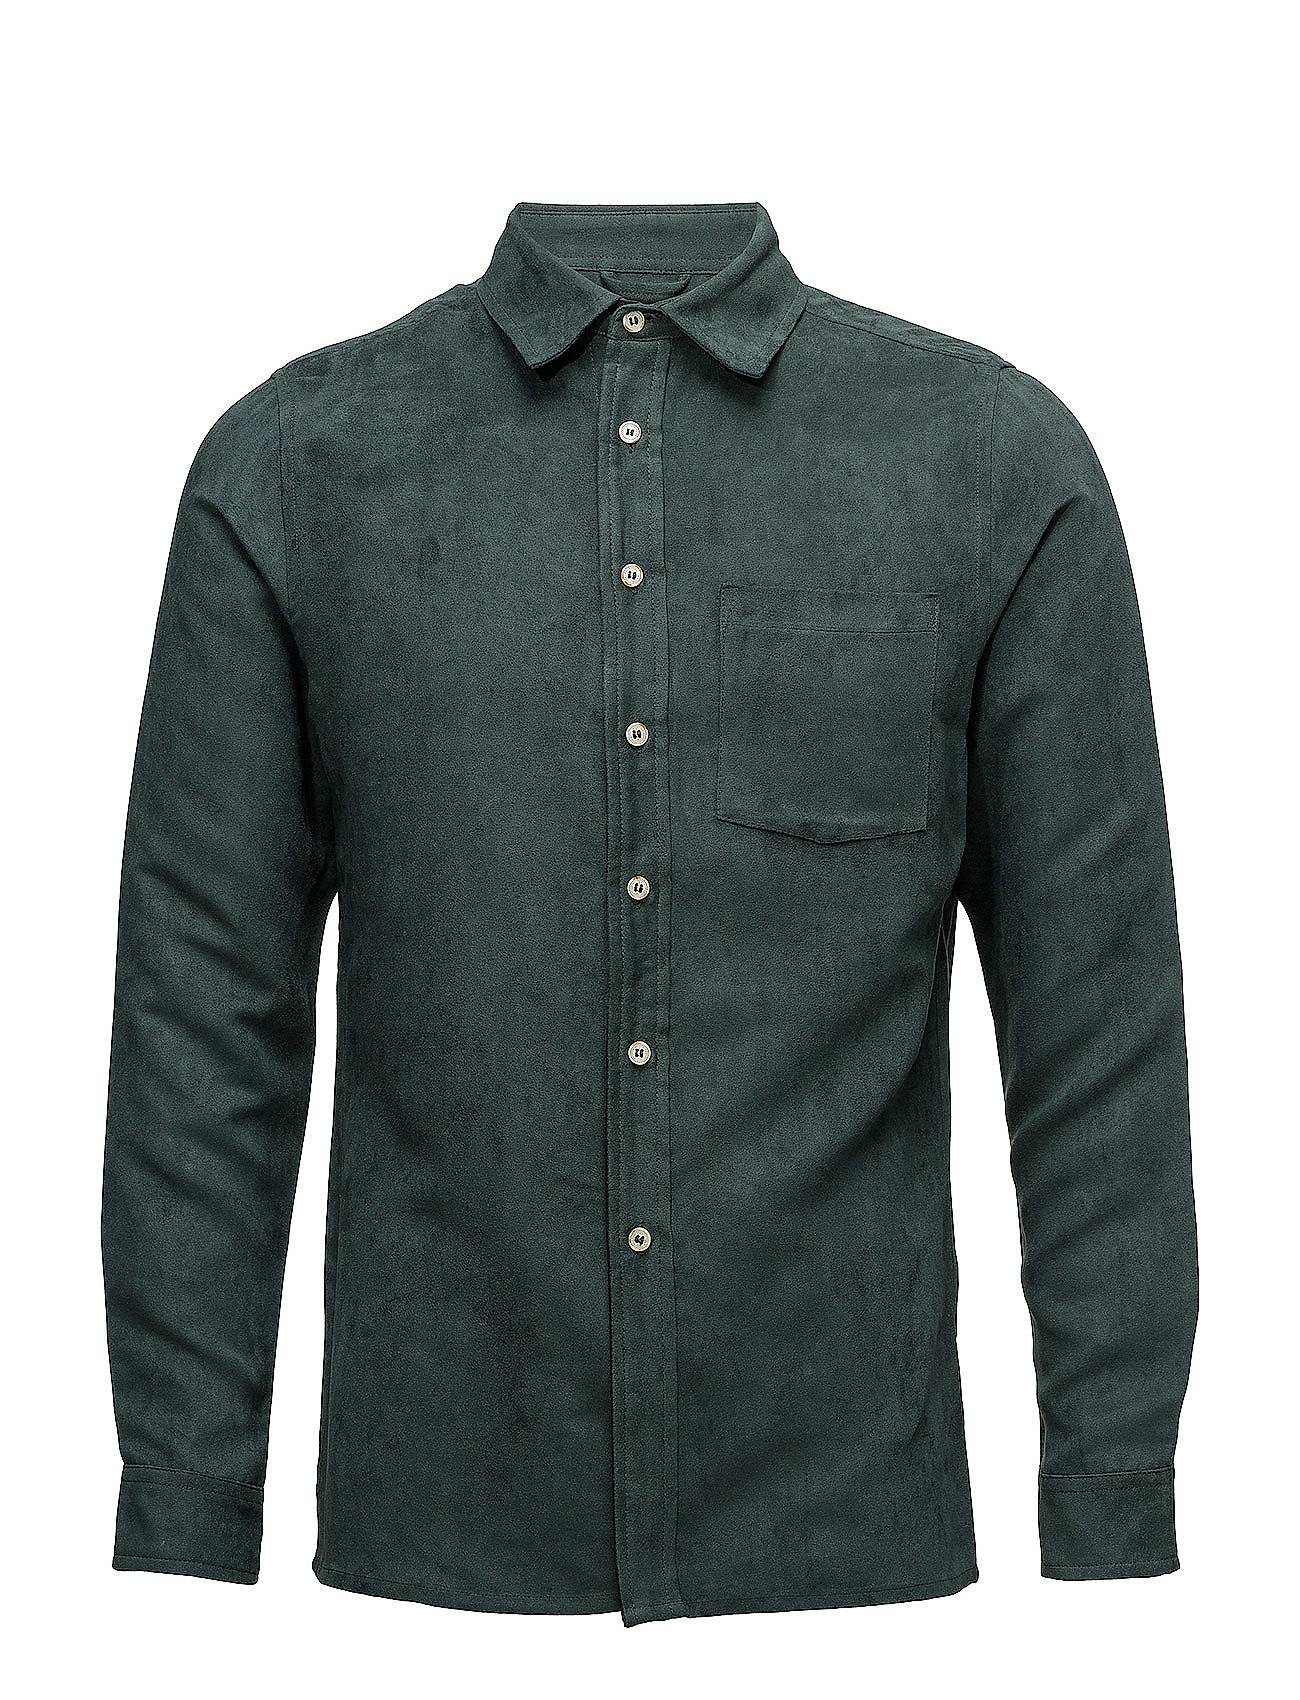 Knowledge Cotton Apparel Suede Shirt - Grs